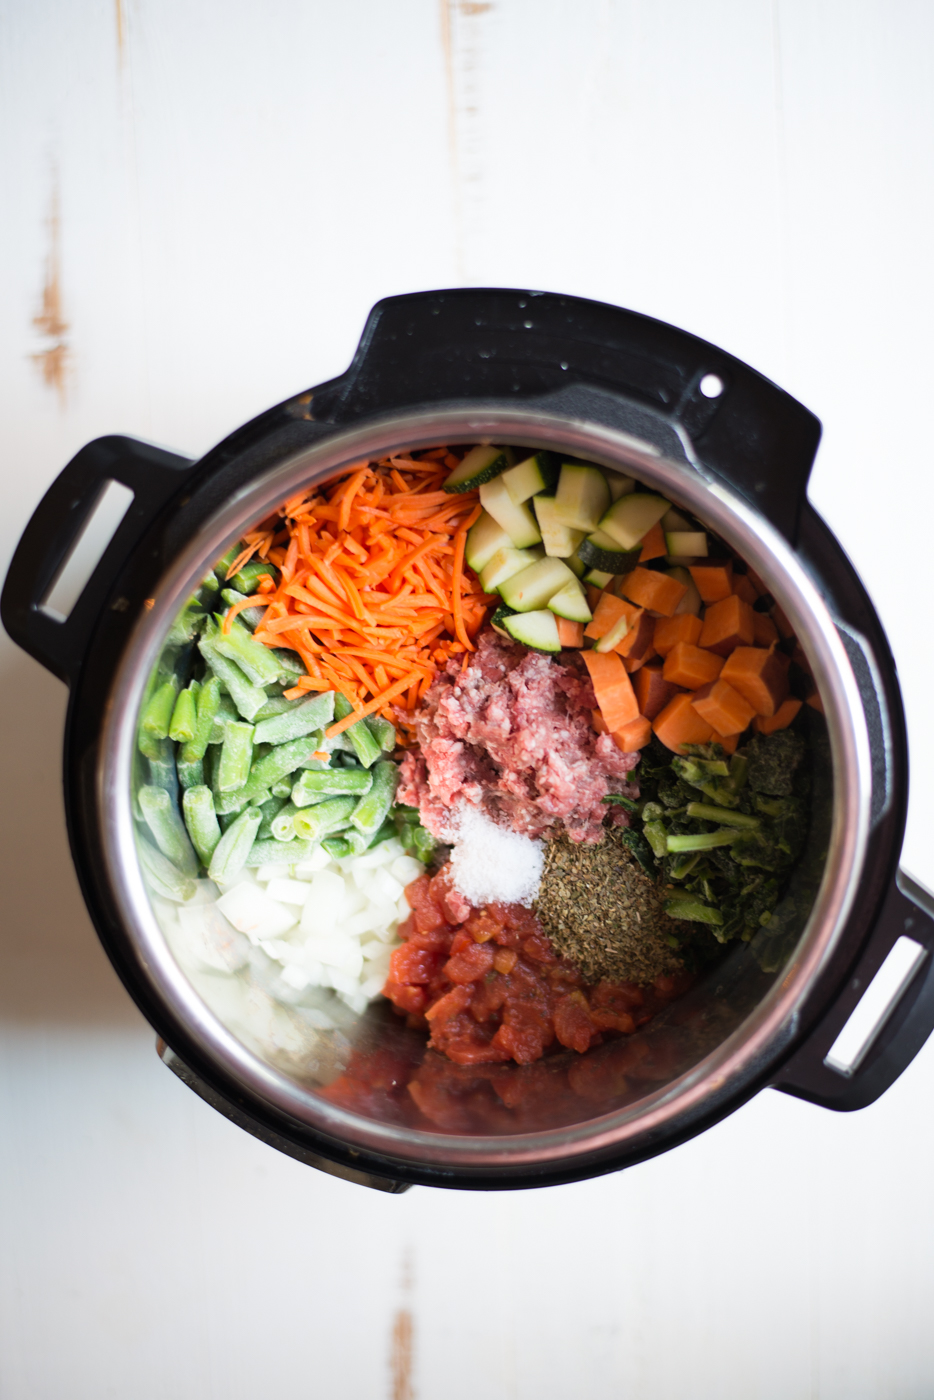 Instant Pot Minestrone (Whole30, No-Beans) is packed with protein and veggies and makes for the perfect, hearty, one-pot meal. A gluten-free, dairy-free, paleo, whole30 friendly recipe. #realfoodwholelife #realfoodwholeliferecipe #instantpot #recipe #glutenfree #dairyfree #dinner #instantpotrecipe #healthy #healthyrecipe #cleaneating #whole30 #paleo